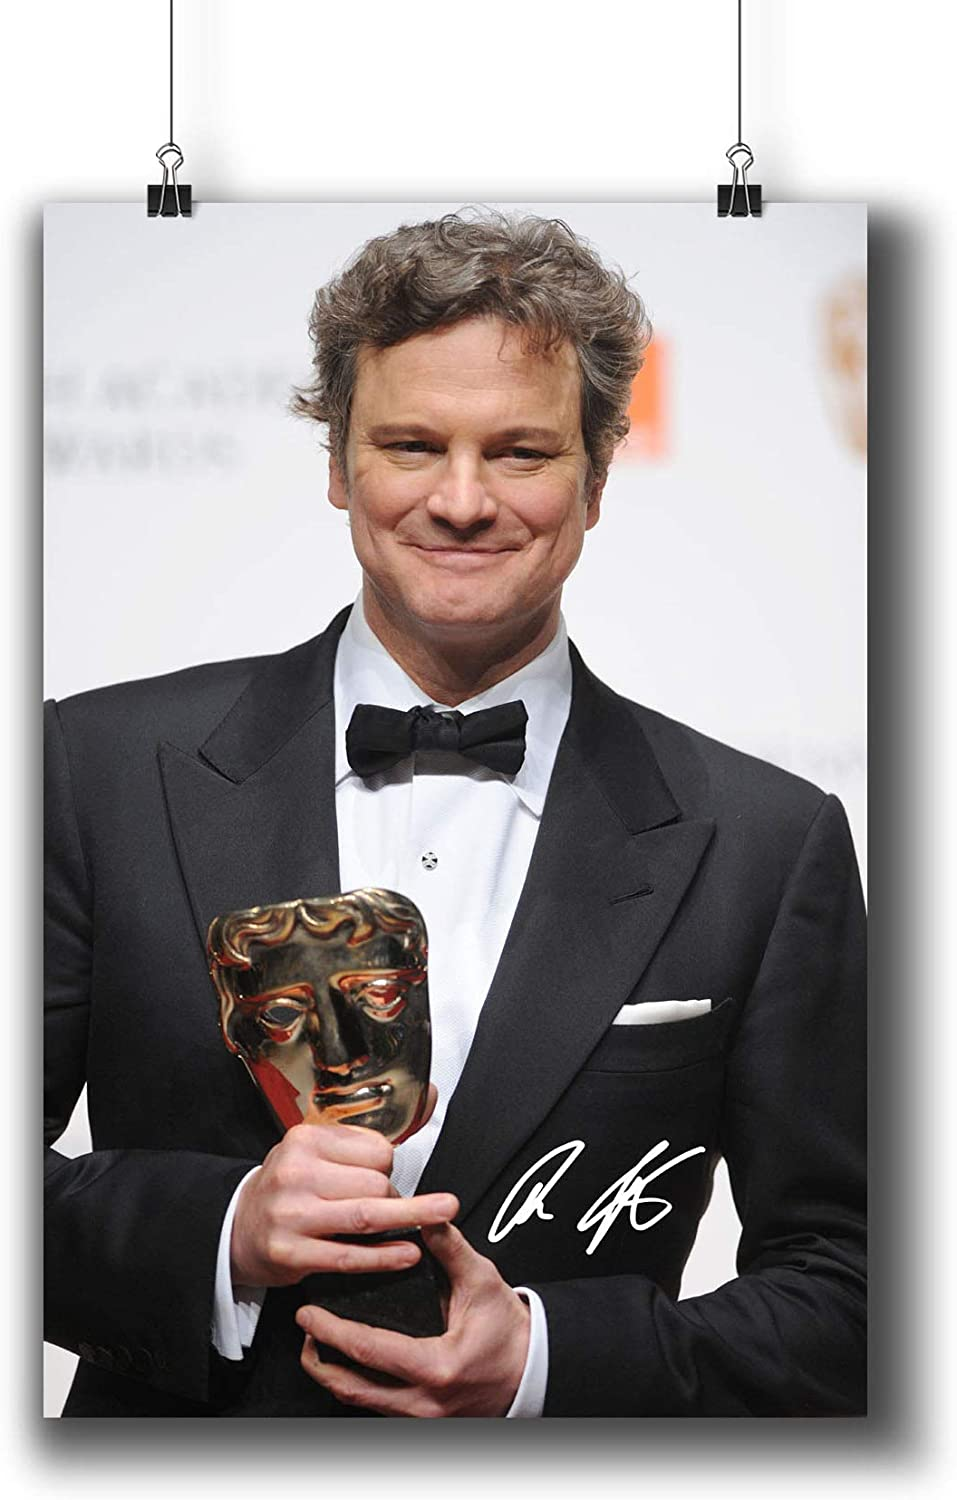 Colin Firth Actor Movie Photo Poster Prints 006-009 Reprint Signed,Wall Art Decor for Dorm Bedroom Living Room (A3|11x17inch|29x42cm)